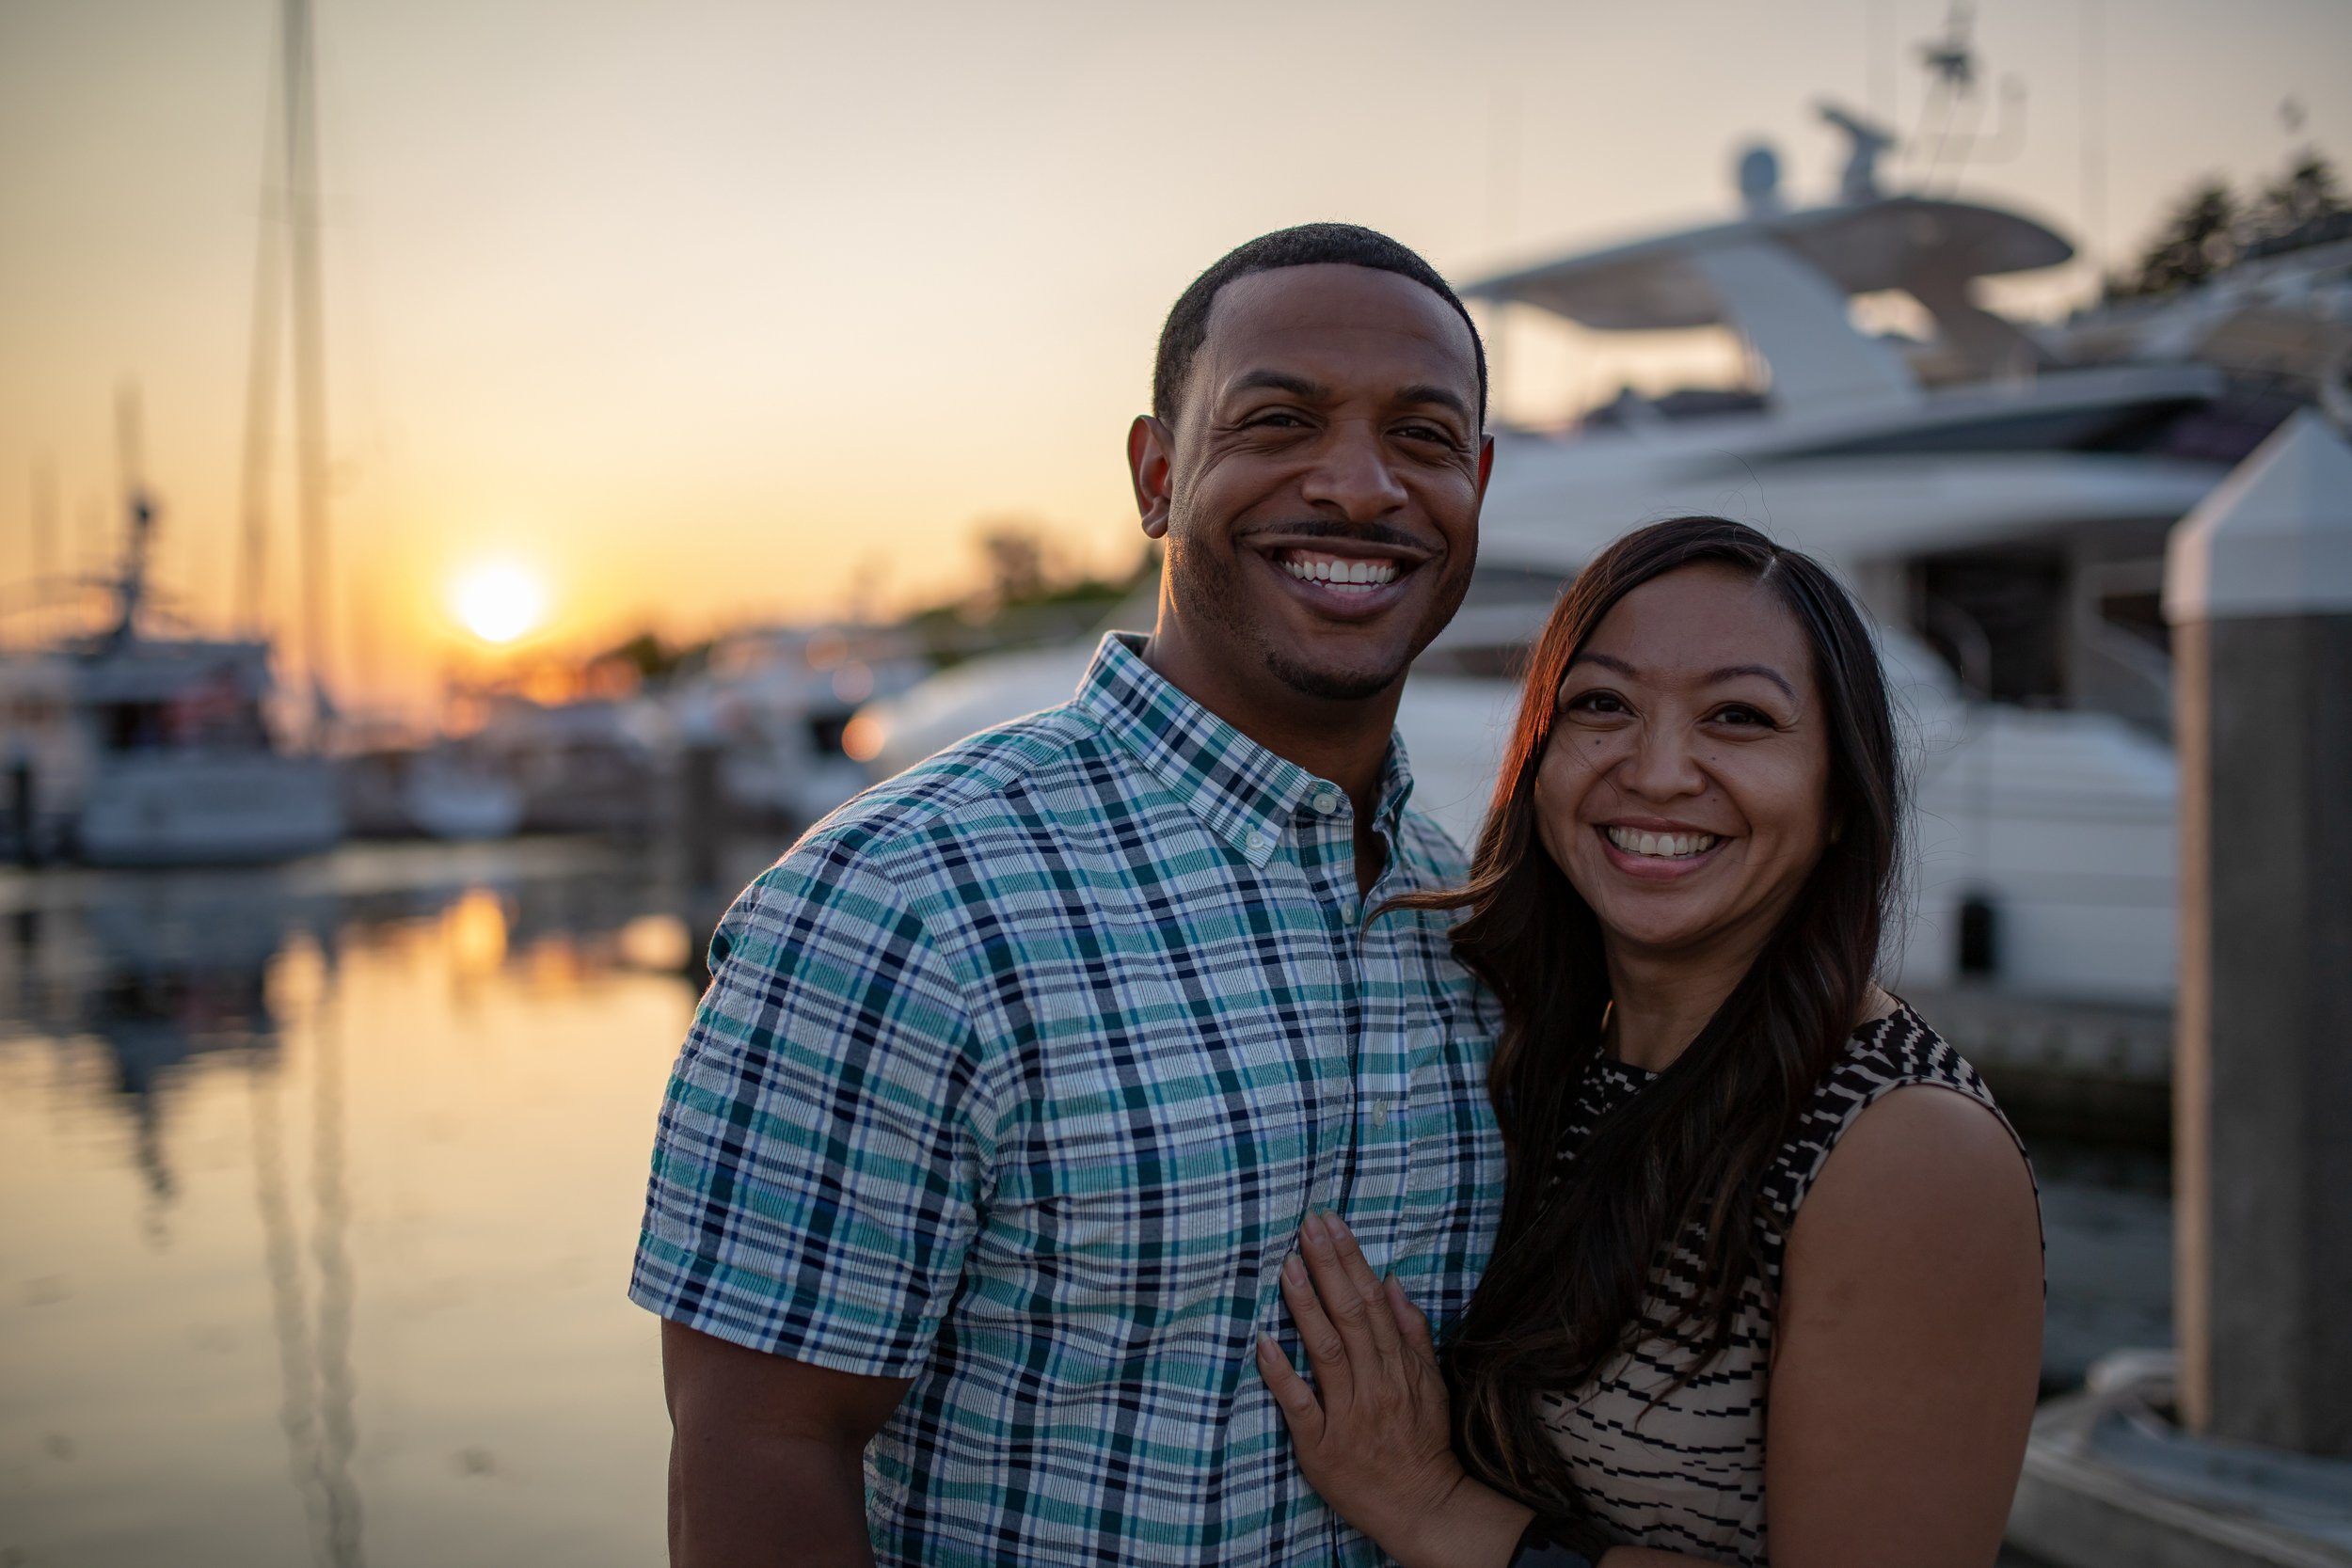 Couples - Intimate marriages require intentional growth. Whether you're engaged, starting out or have been married for years, we offer guidance for your journey.